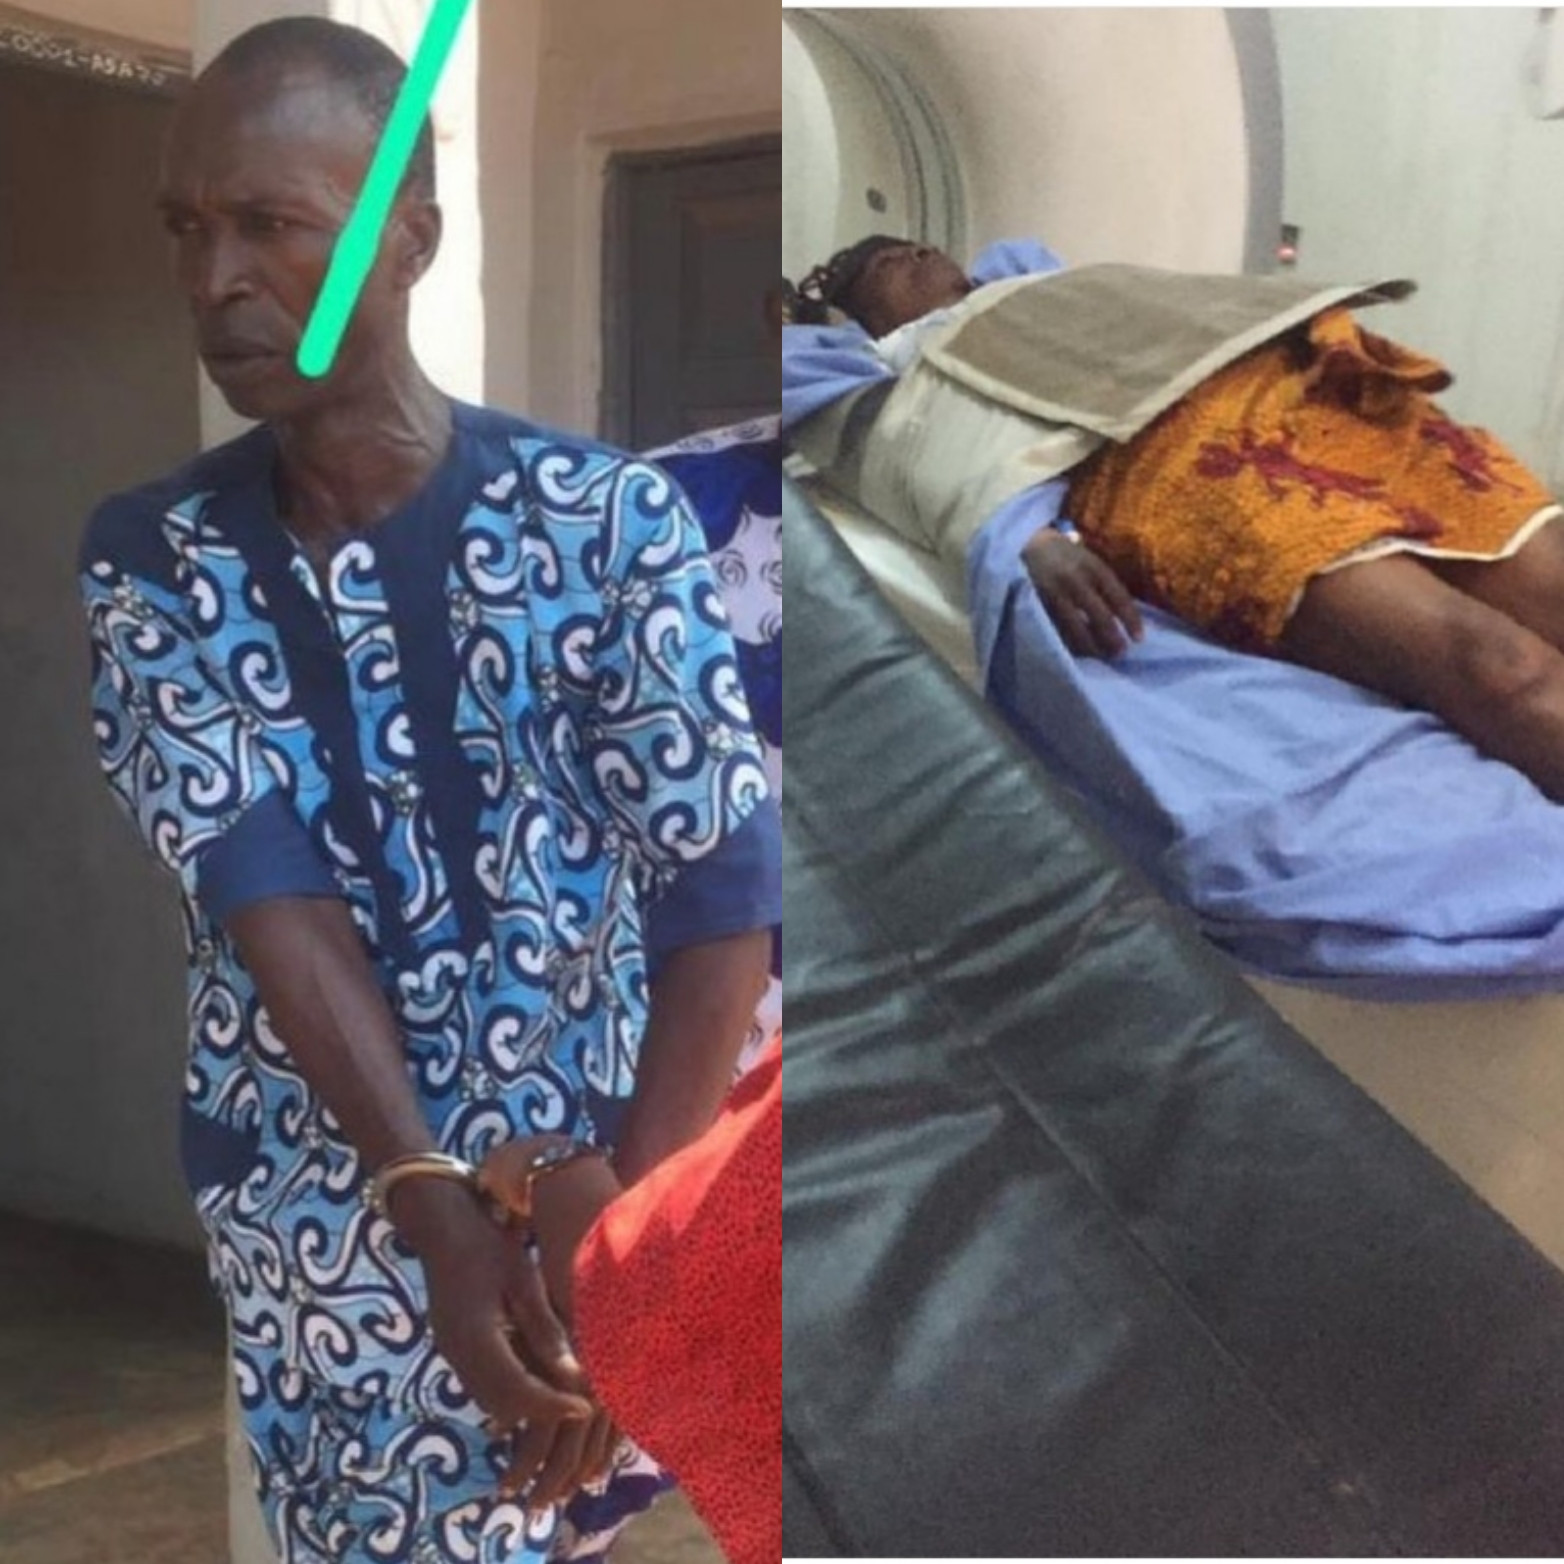 MAN ARRESTED FOR ALLEGEDLY BEATING HIS WIFE TO DEATH BECAUSE SHE REFUSED TO HAVE SEX WITH HIM. PHOTOS AND VIDEO